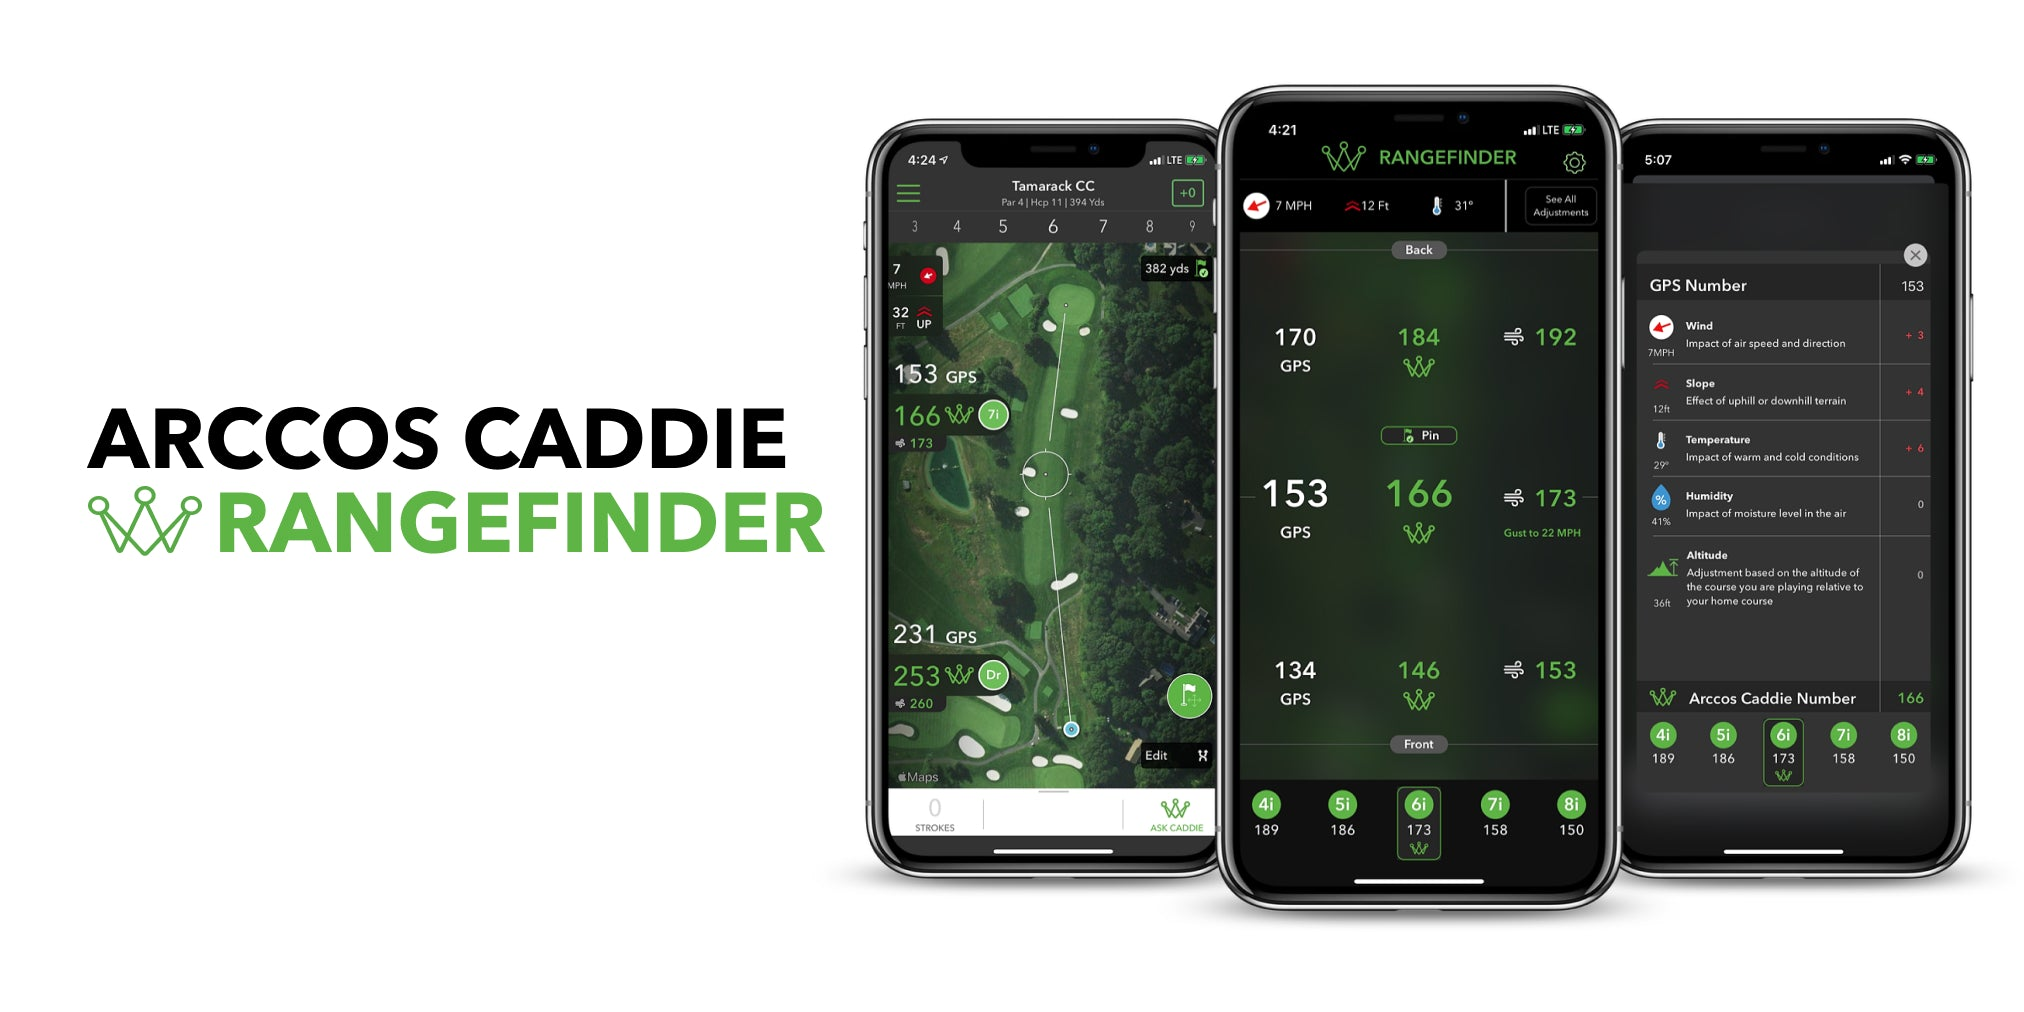 Arccos Caddie Rangefinder - Golf's First Artificial Intelligence Rangefinder